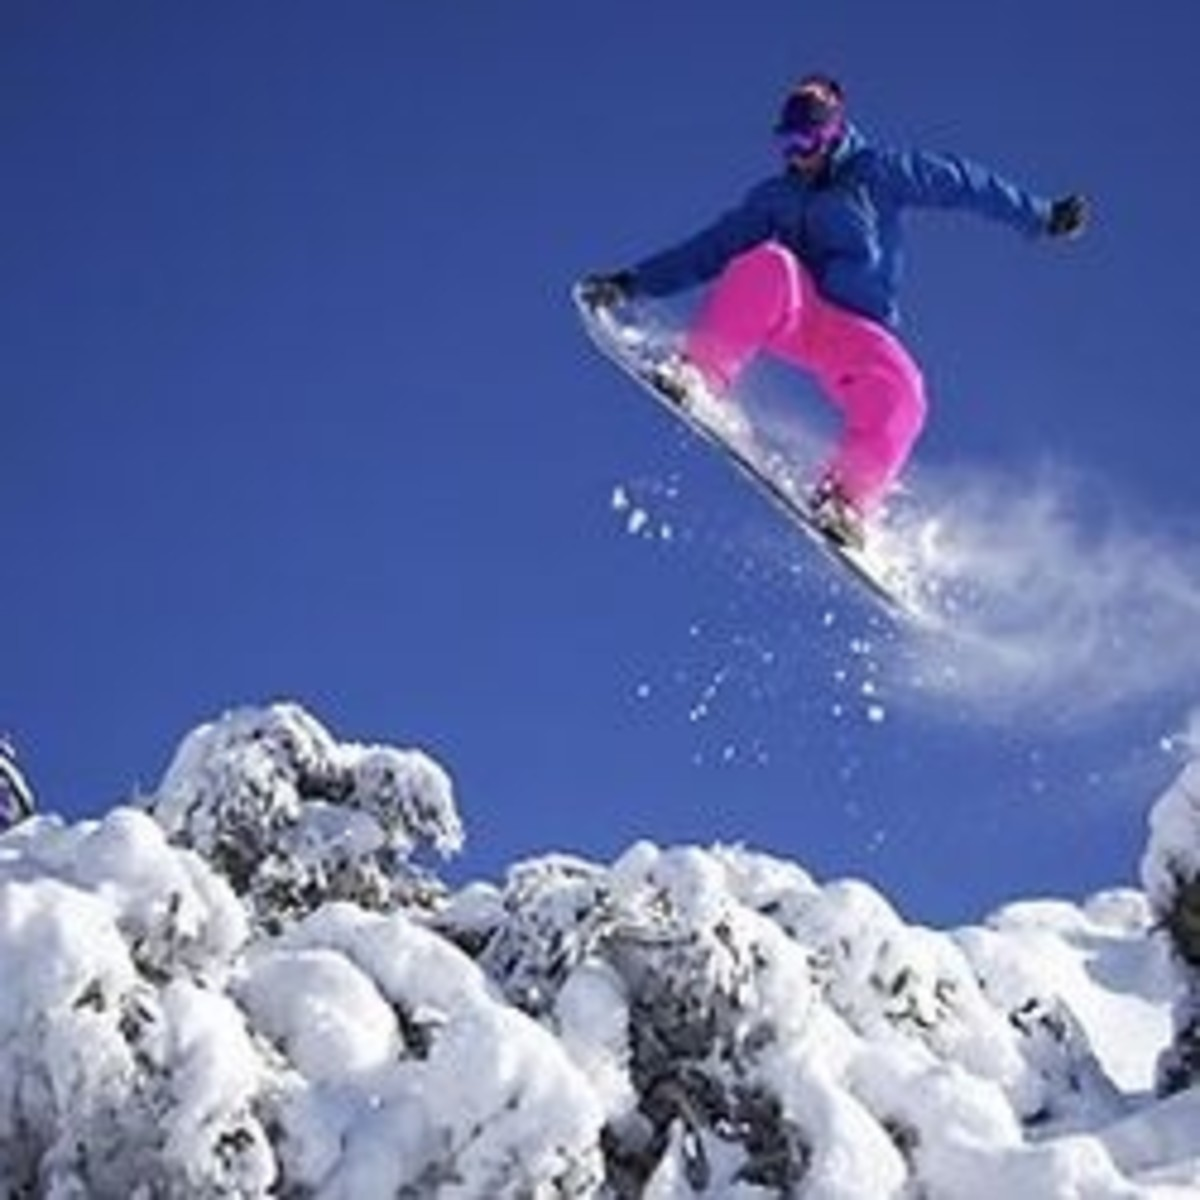 Top 10 Snowboard movies